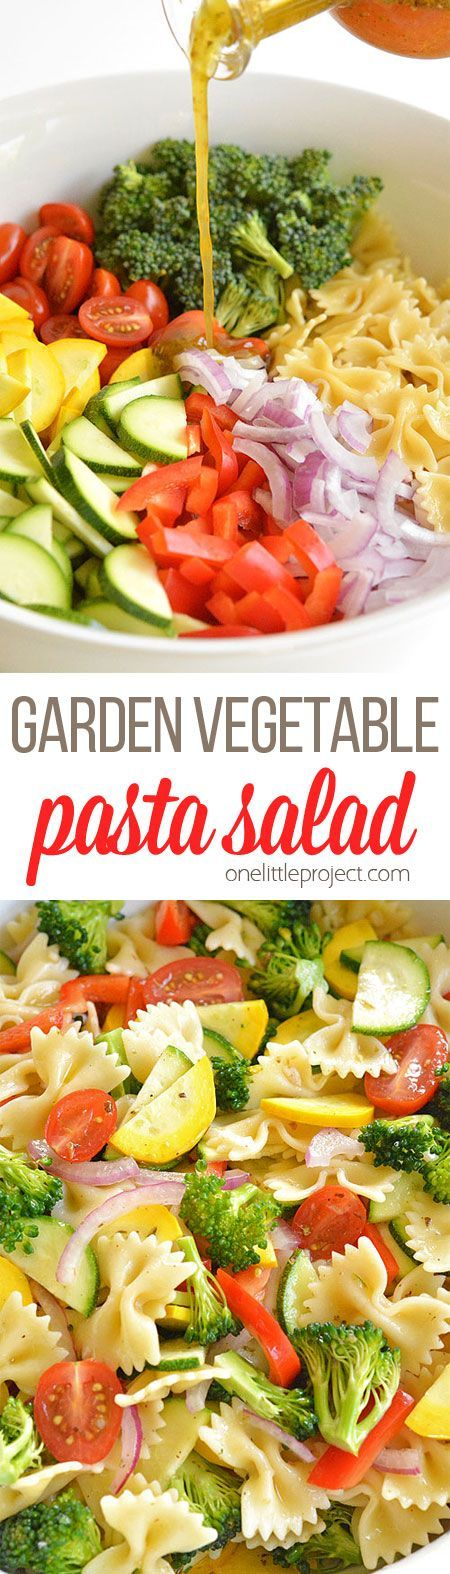 This garden vegetable pasta salad recipe is sooooooooo good! It uses all fresh, summer ingredients that combine to give it the most amazing flavour! It's loaded with almost all the colours of the rain